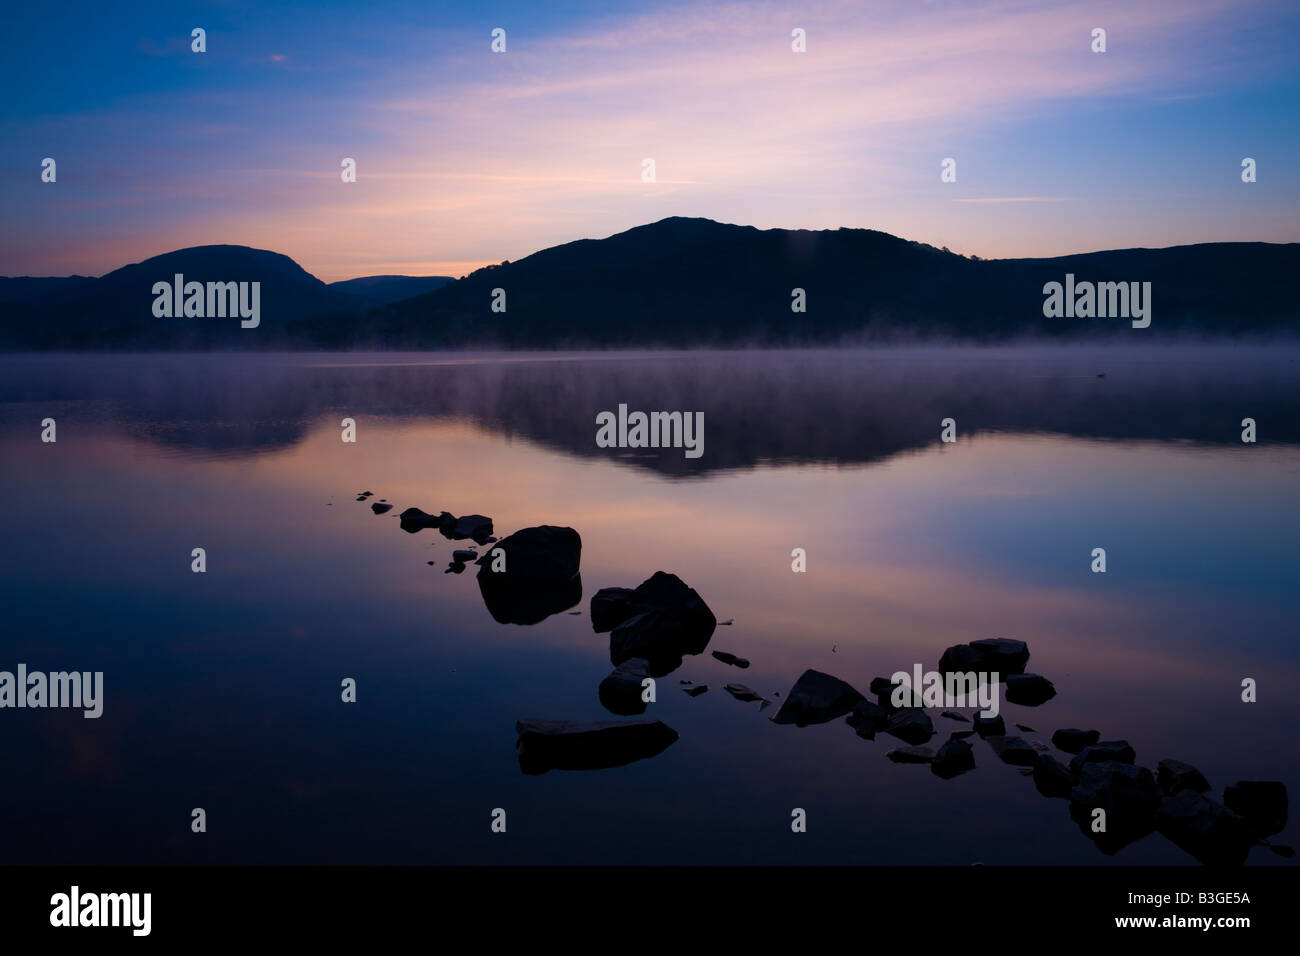 England, Cumbria, Lake District National Park. Dawn at Low Wray, looking across the still waters of Windermere. - Stock Image